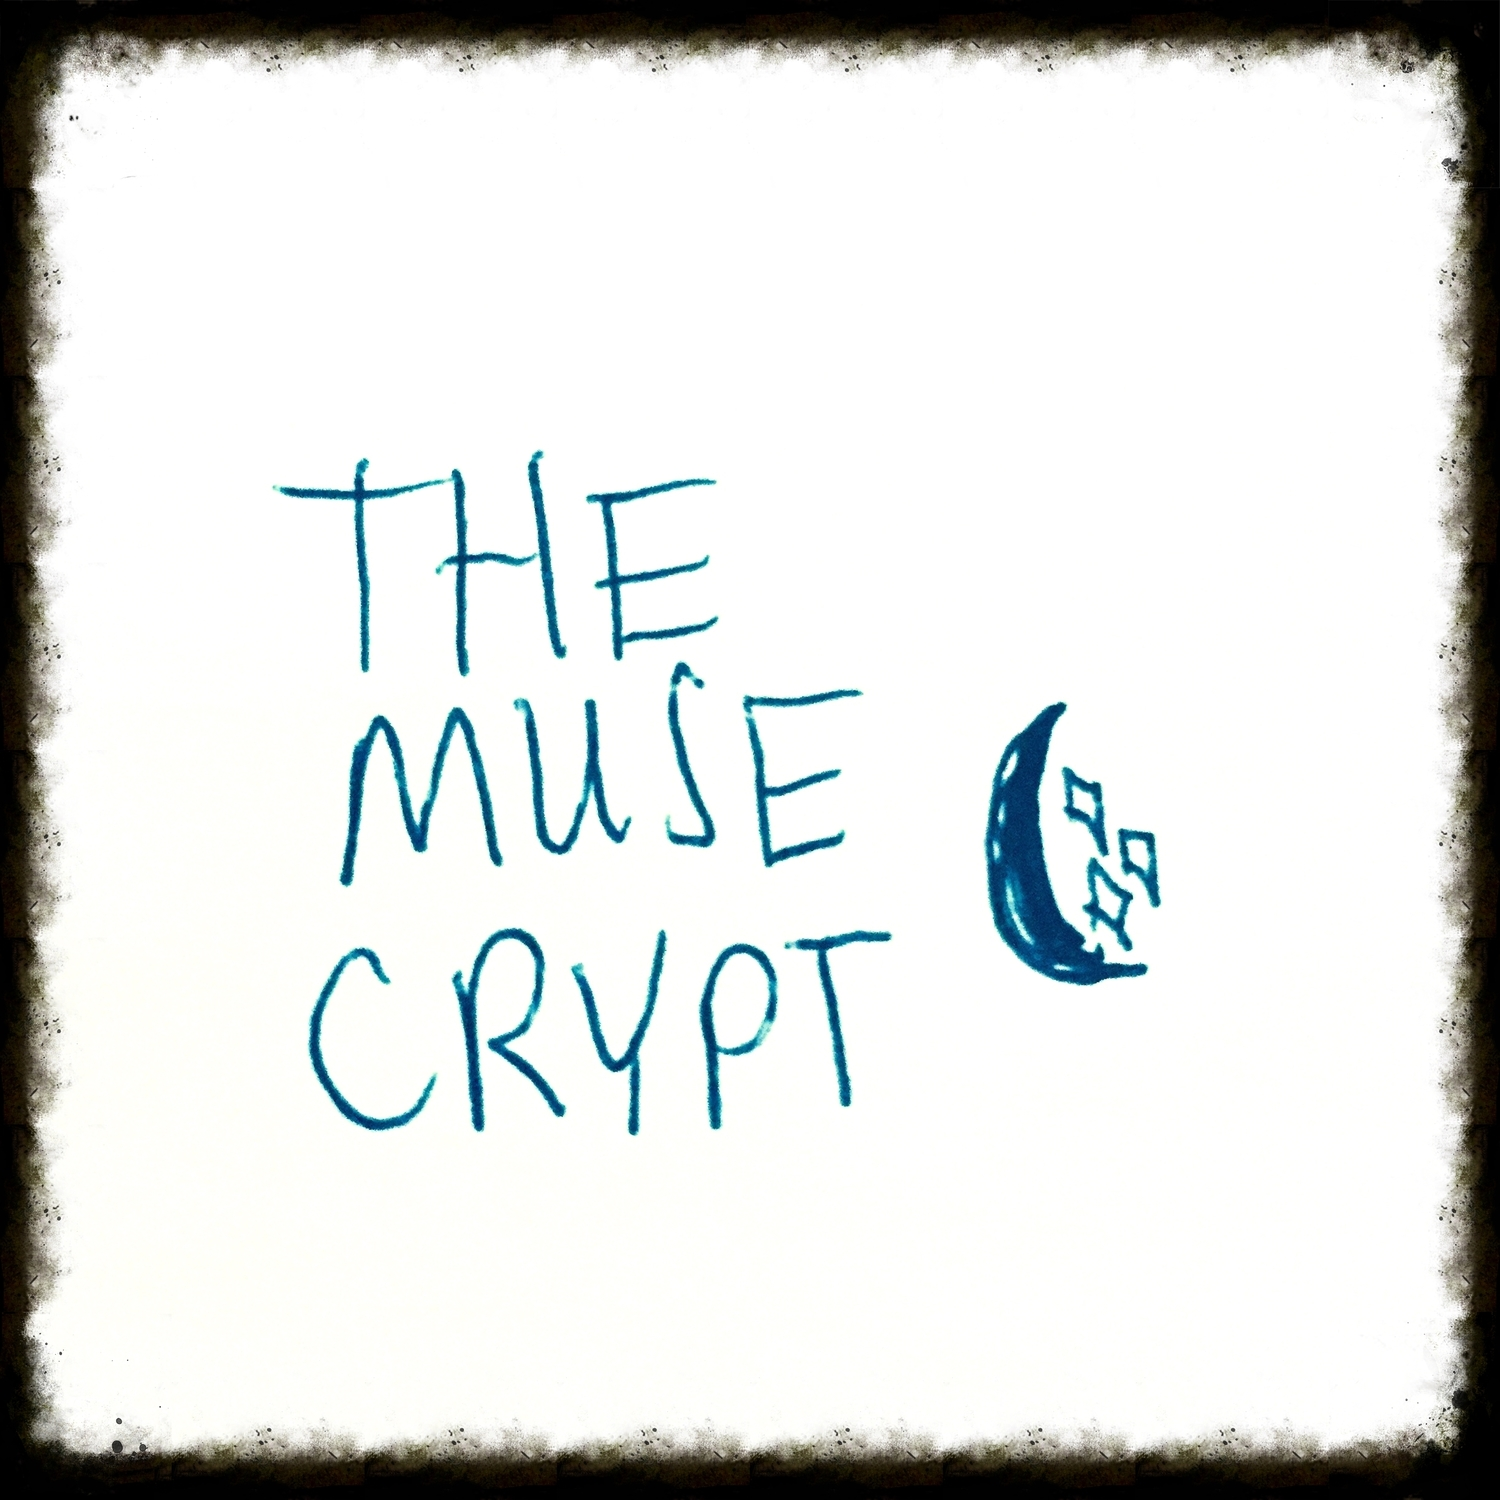 THE MUSE CRYPT